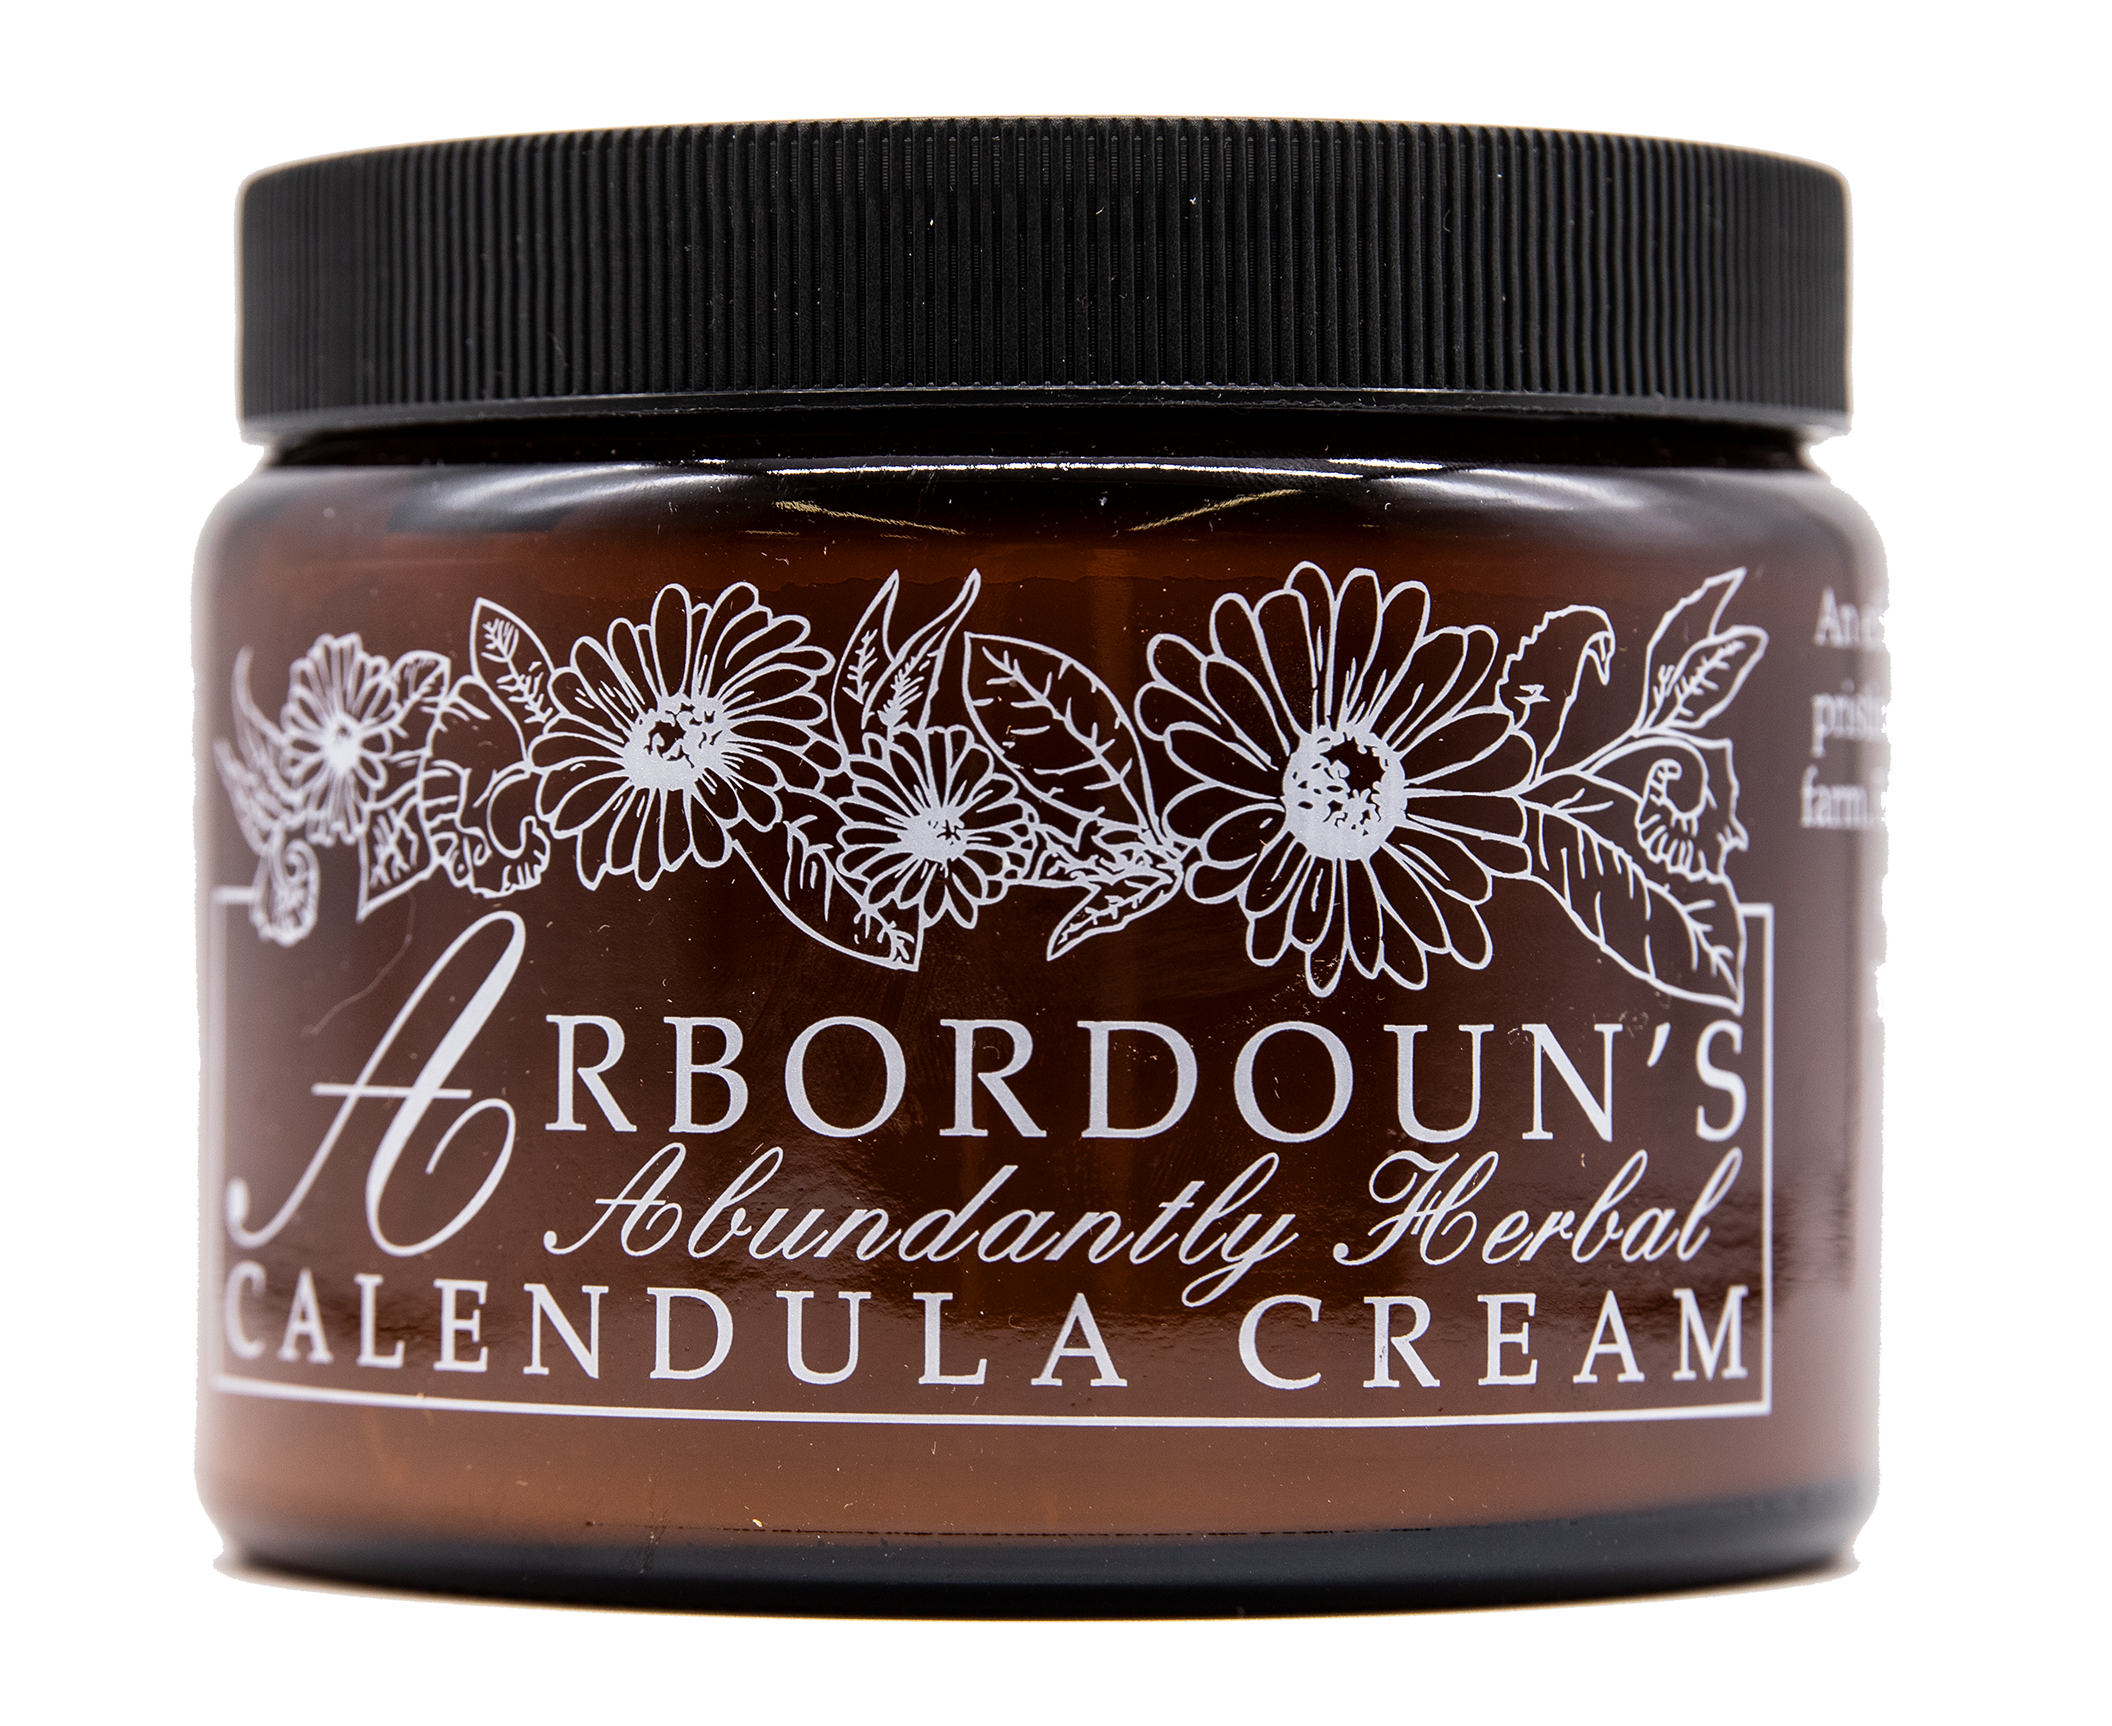 Abundantly Herbal Calendula Cream, 16oz